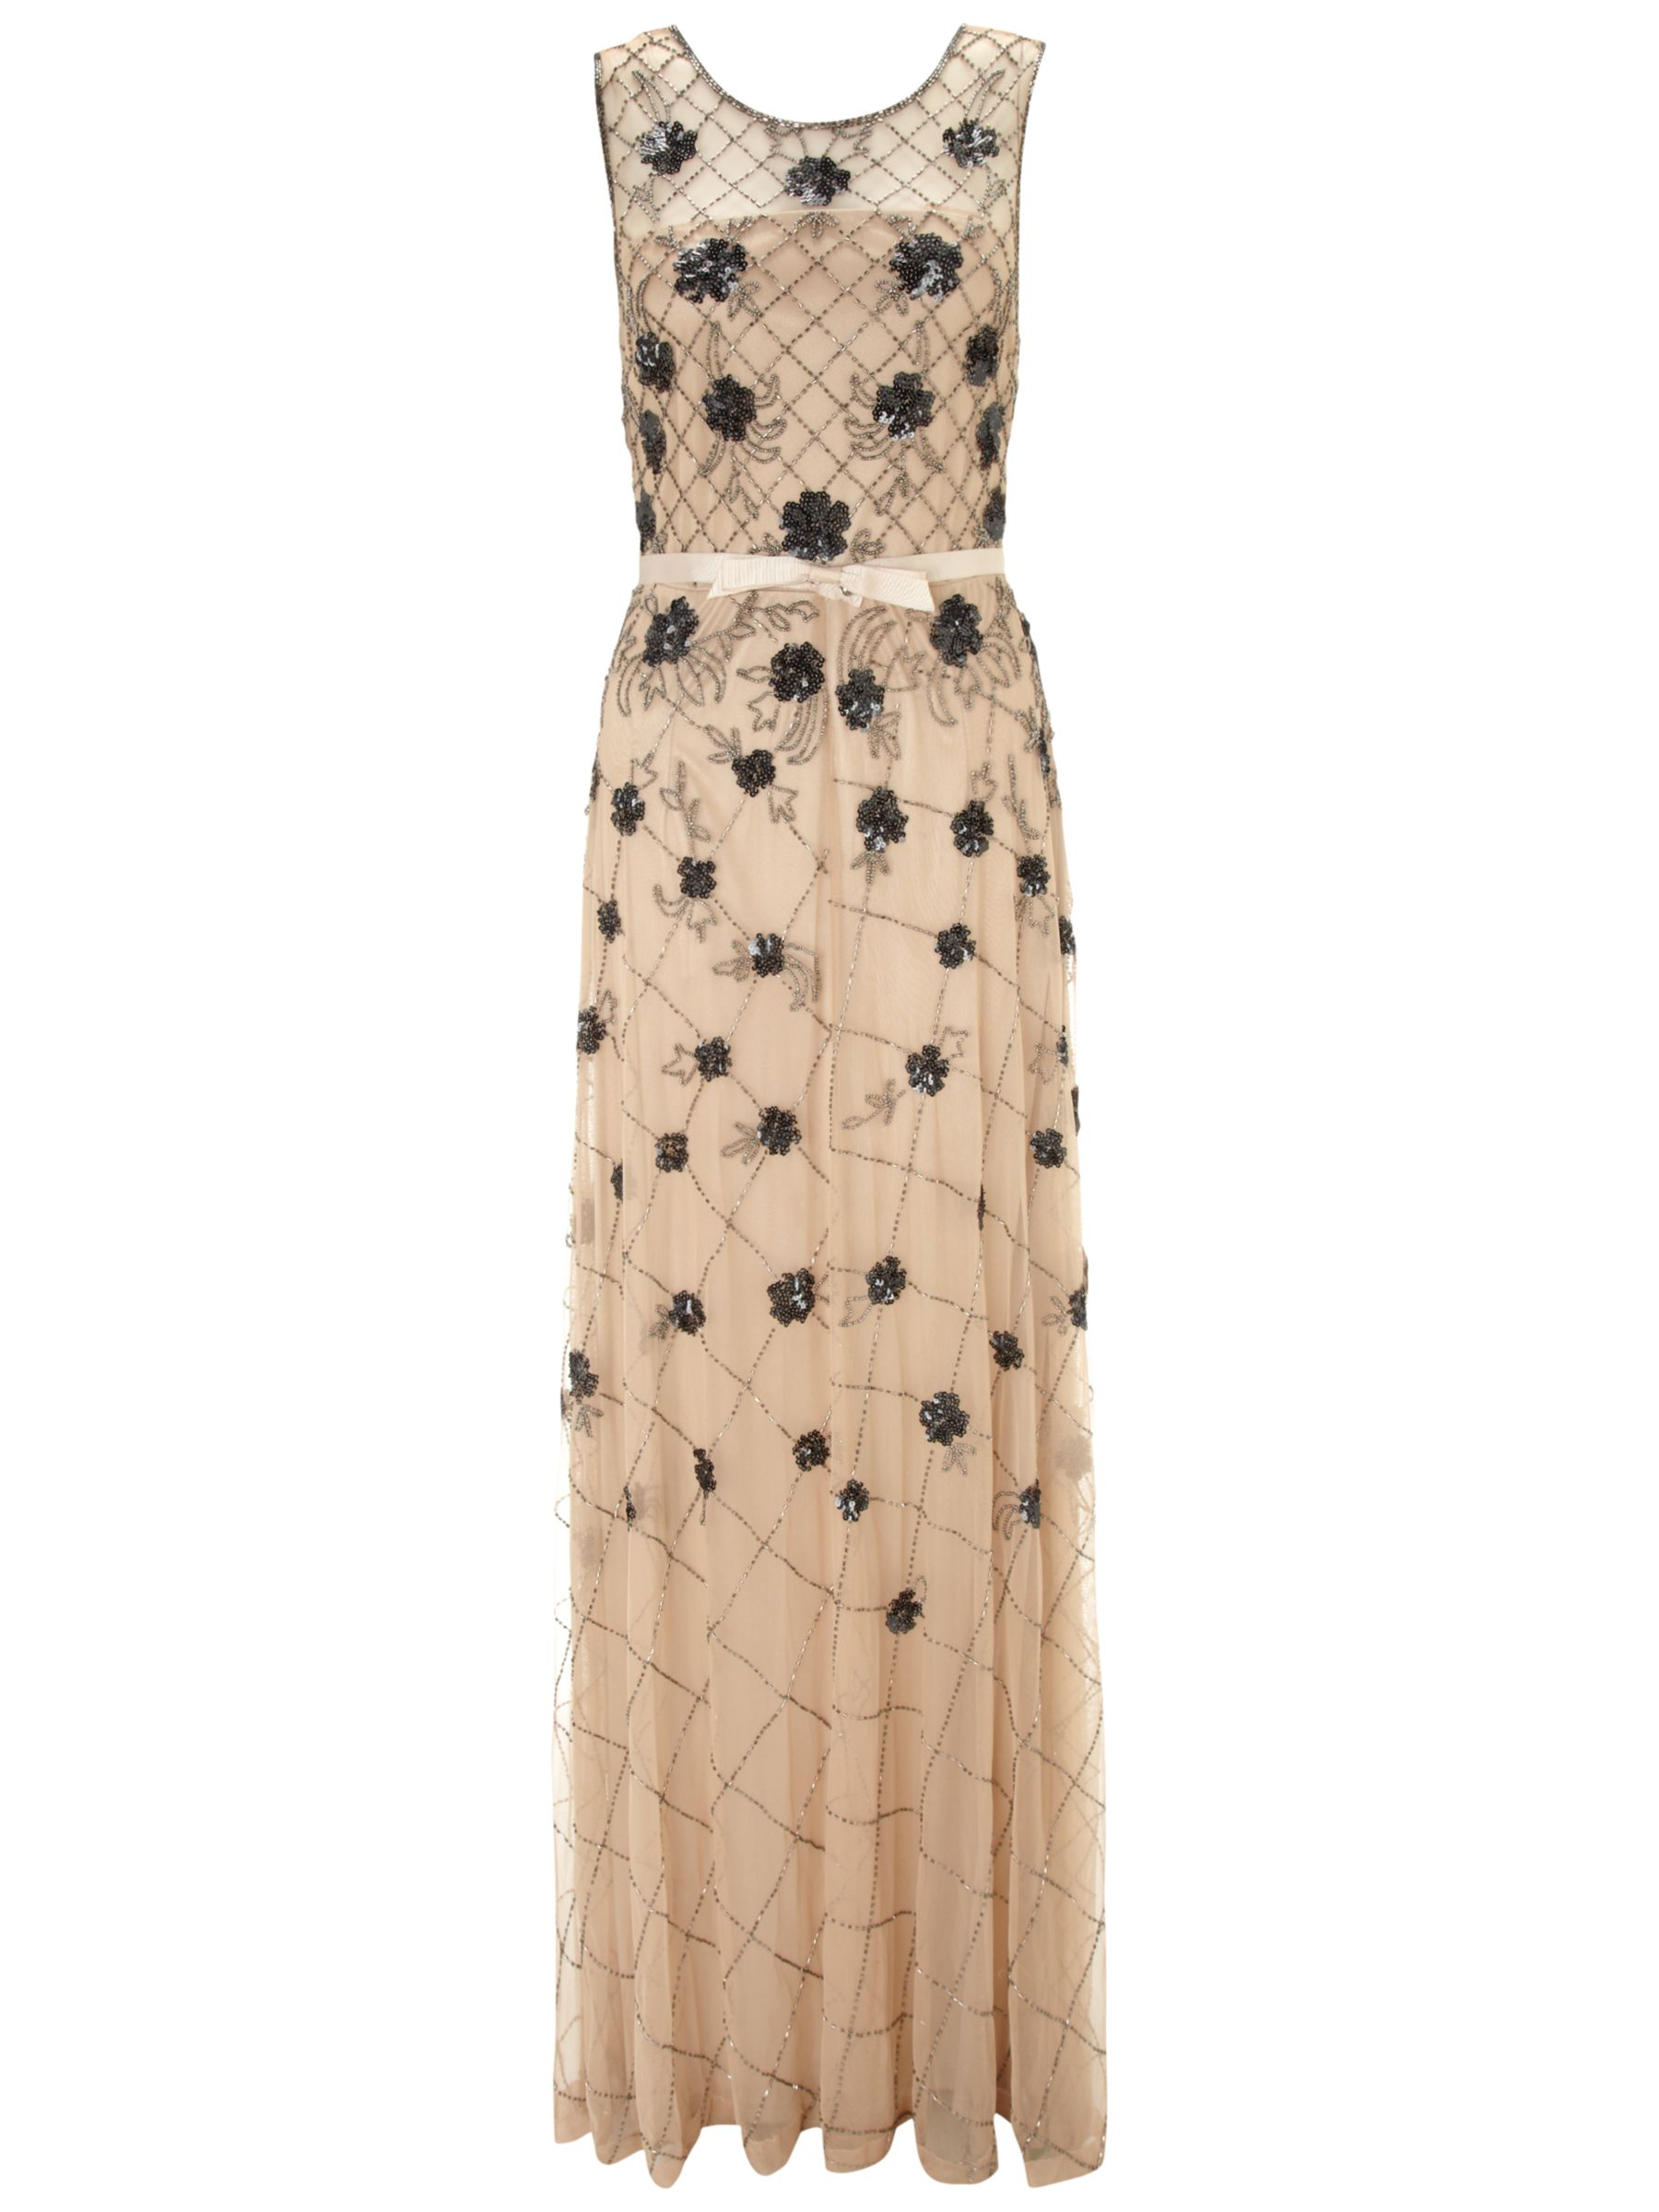 gina bacconi long bead mesh dress champagne, gina, bacconi, long, bead, mesh, dress, champagne, gina bacconi, clearance, womenswear offers, womens dresses offers, women, plus size, womens dresses, special offers, 1131408